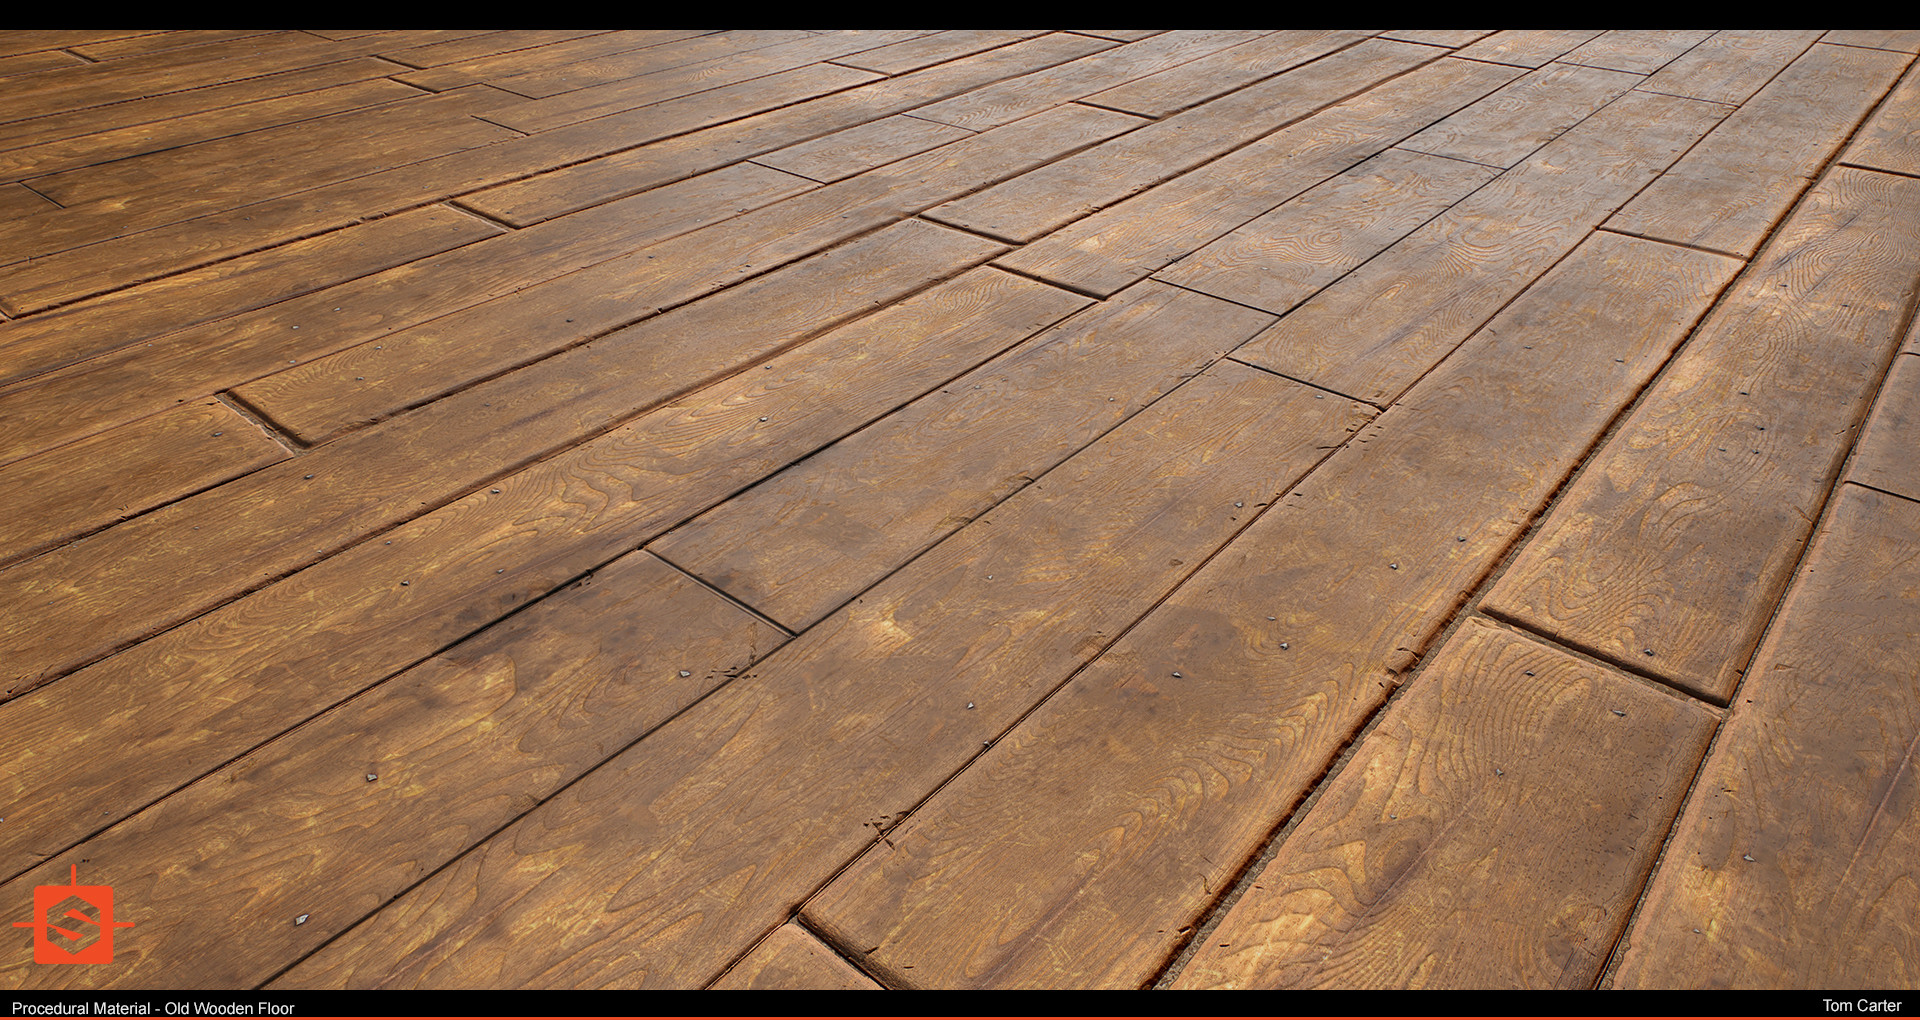 artstation substance designer old wooden floor tom carter